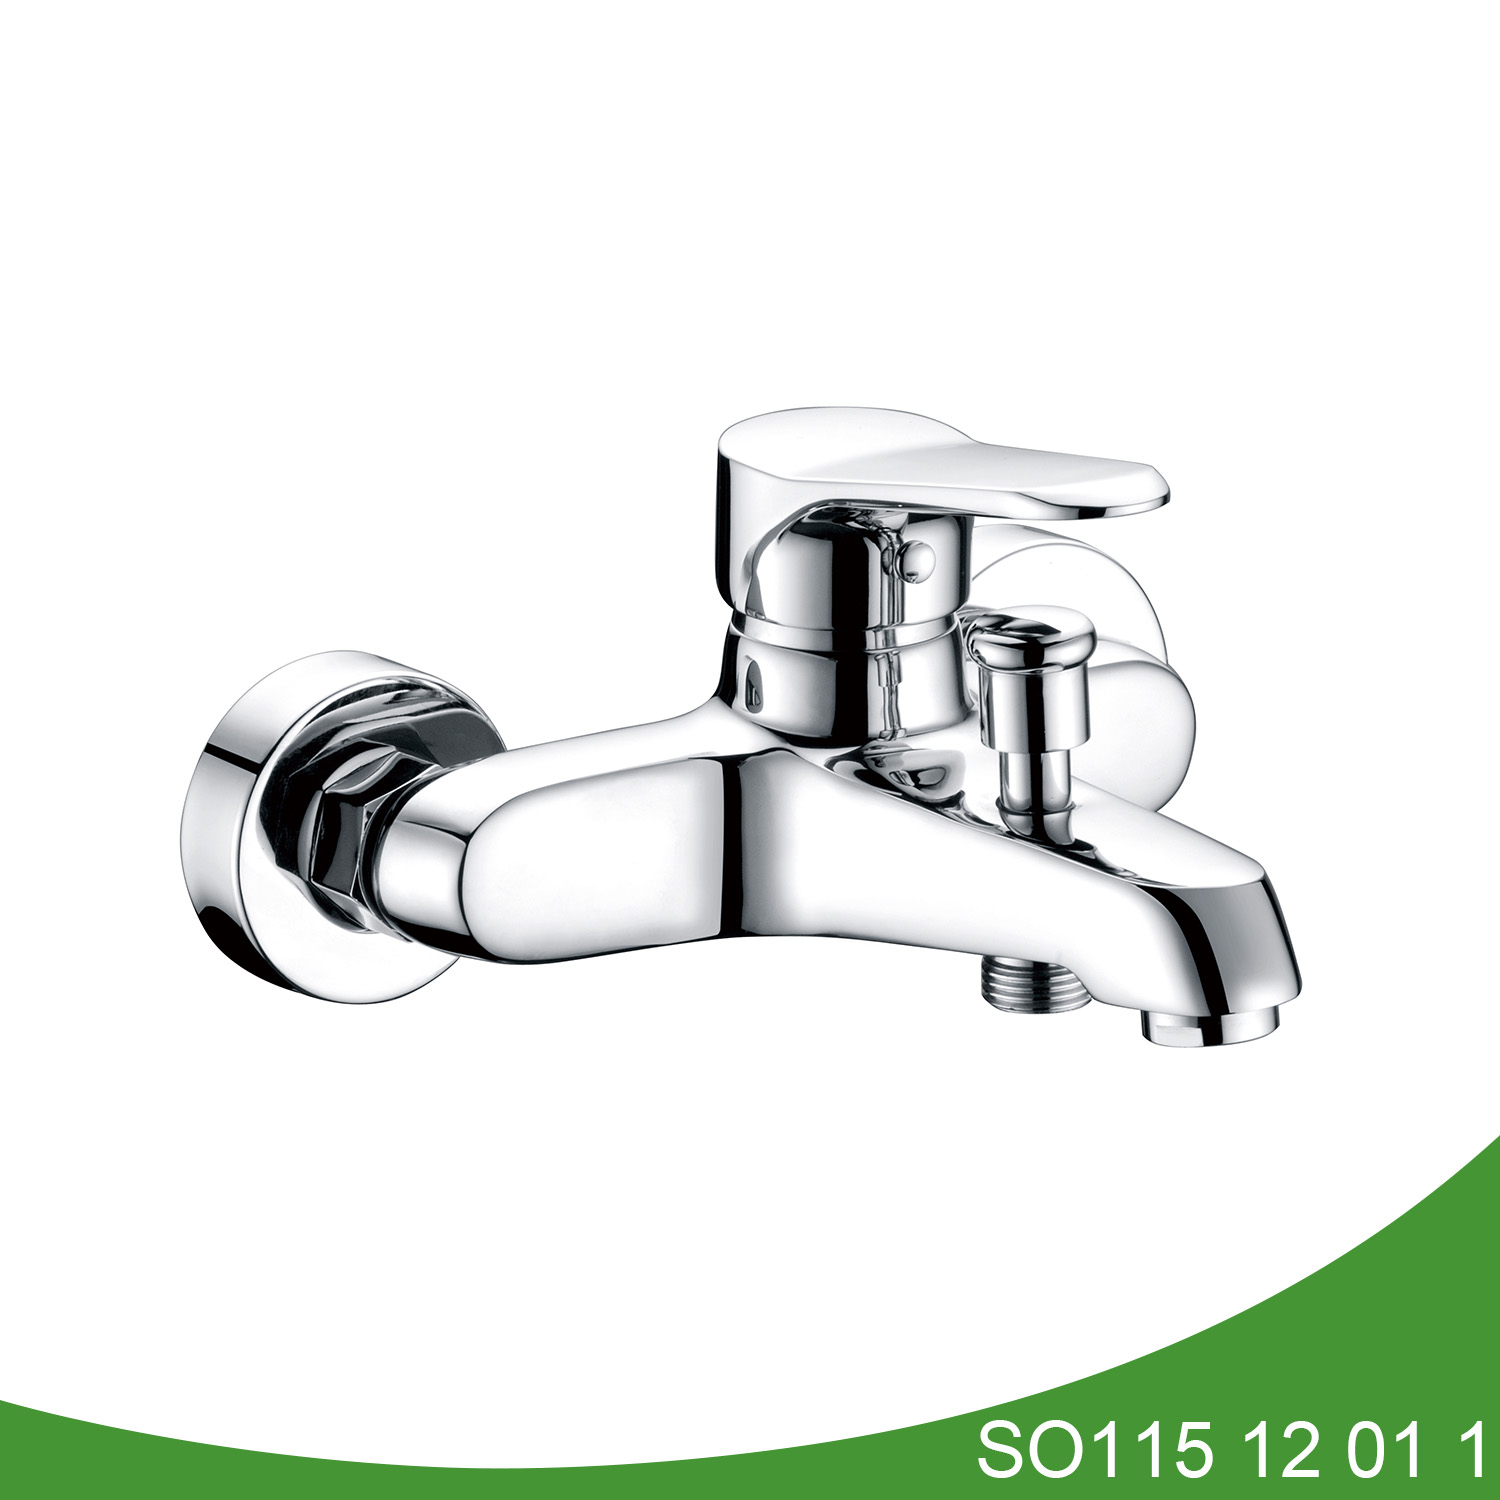 Wall mount shower mixer SO115 12 01 1